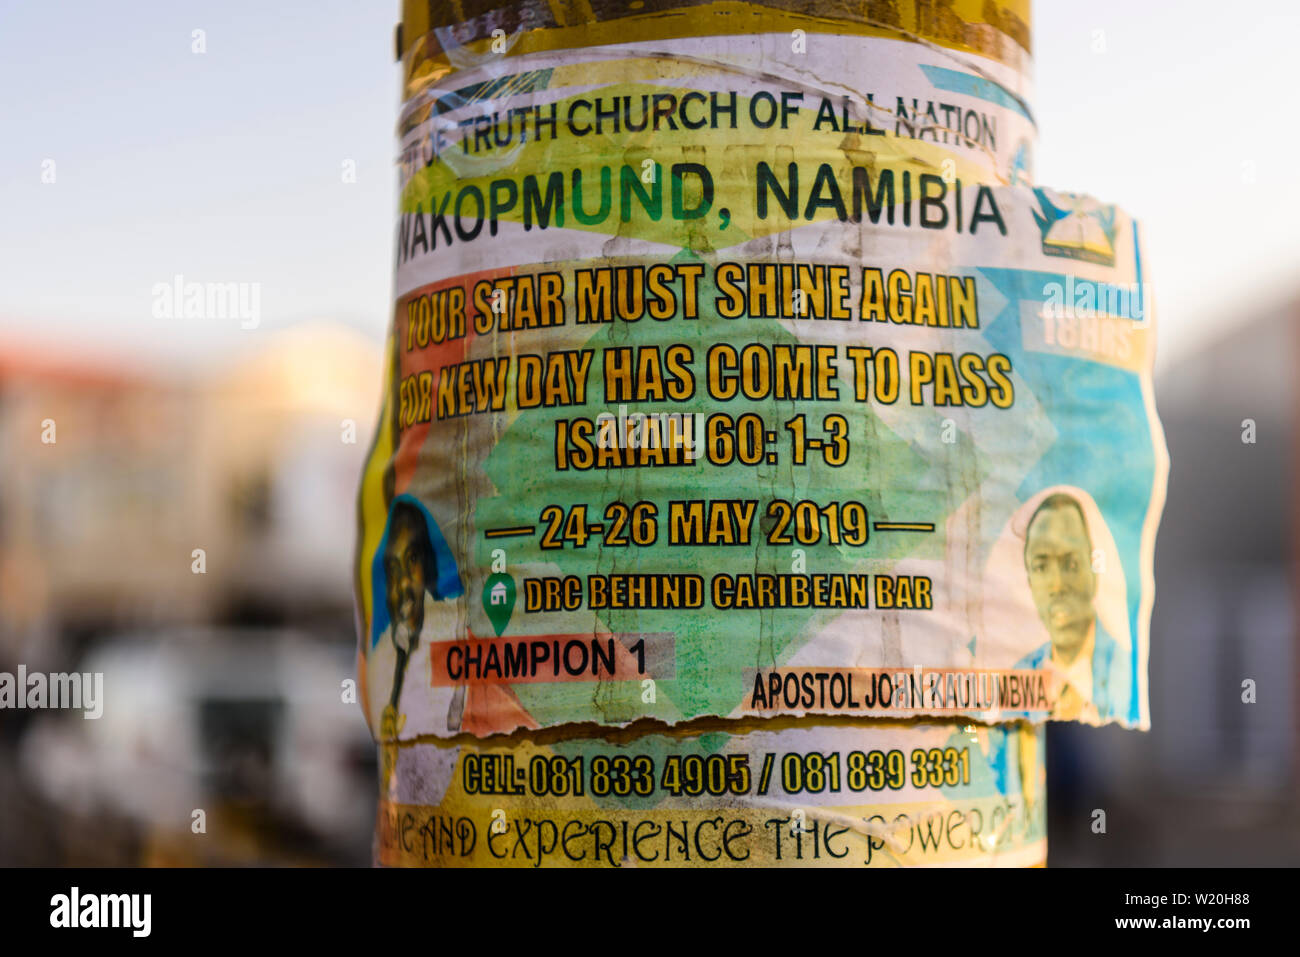 Flyer attached to a lamppost advertising an evangelical meeting in Swakopmund, Namibia. - Stock Image